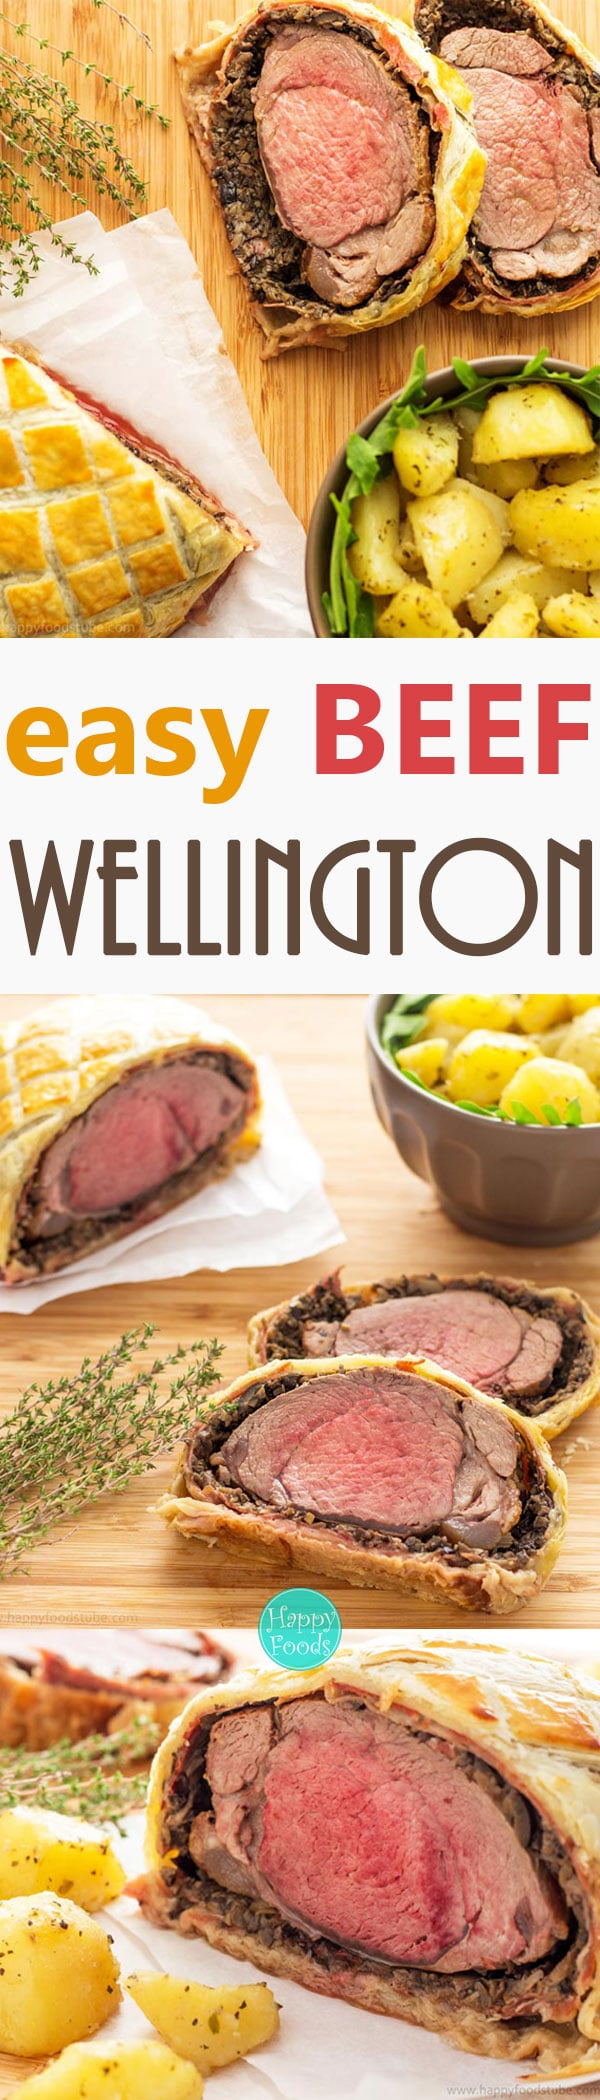 Easy Beef Wellington recipe what everyone can cook at home. If you are looking for a fancy dinner idea, look no further!